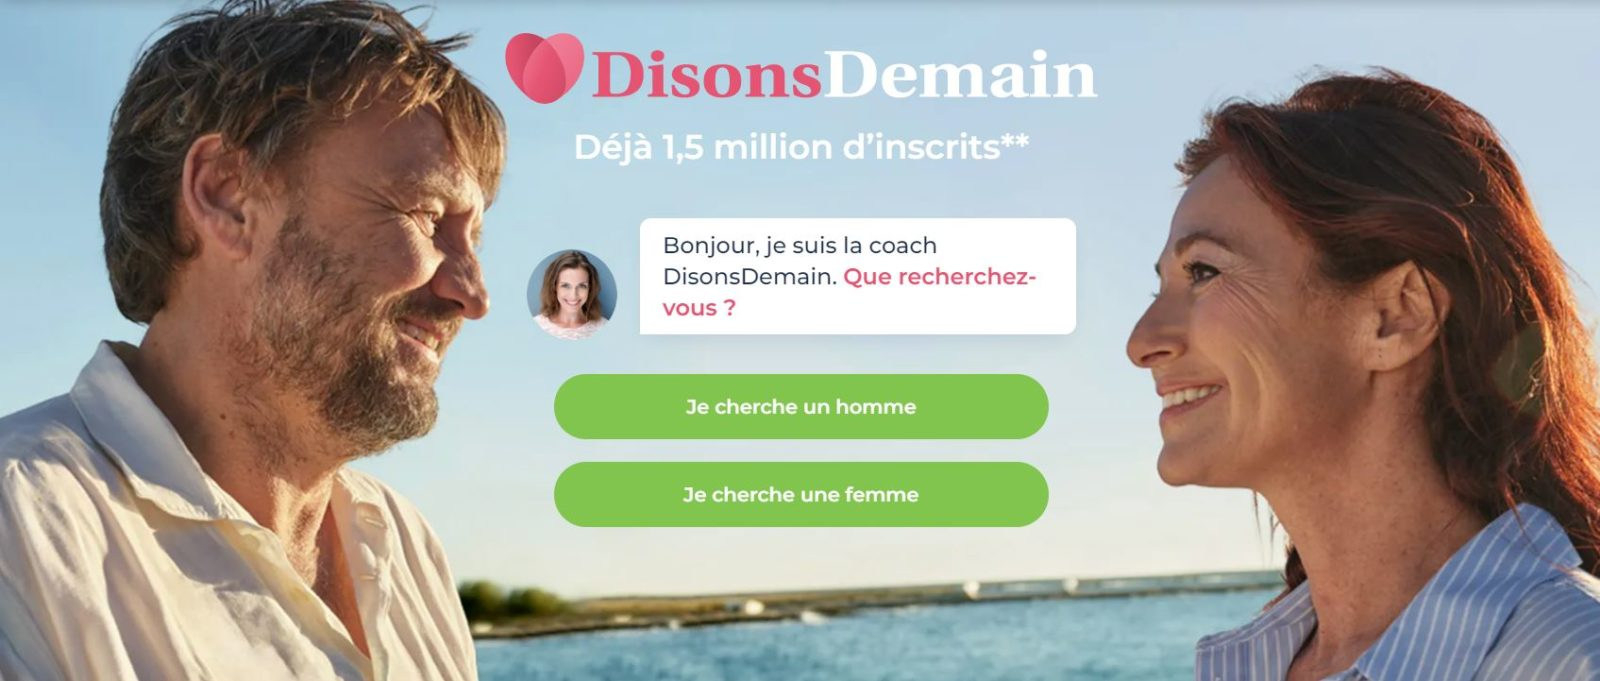 disons demain 2021